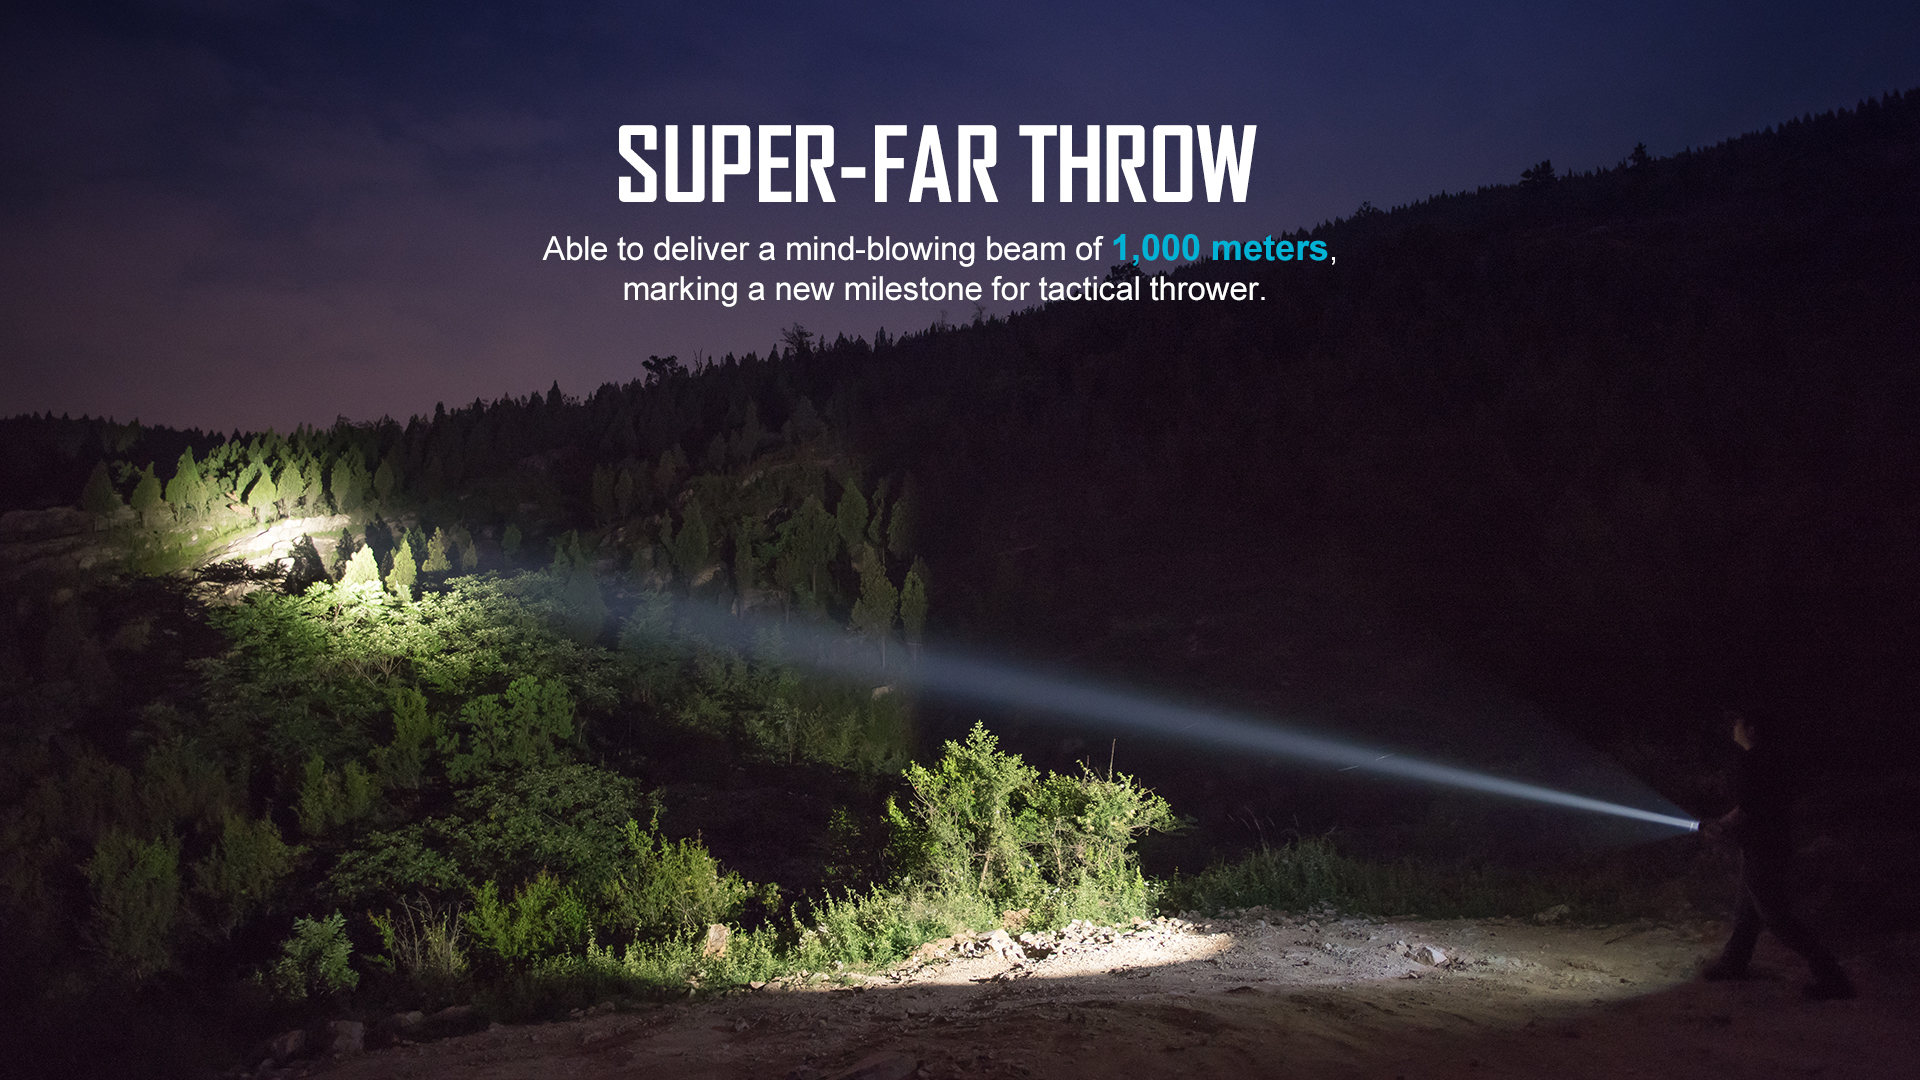 1000 lumens and 1100 meters throw